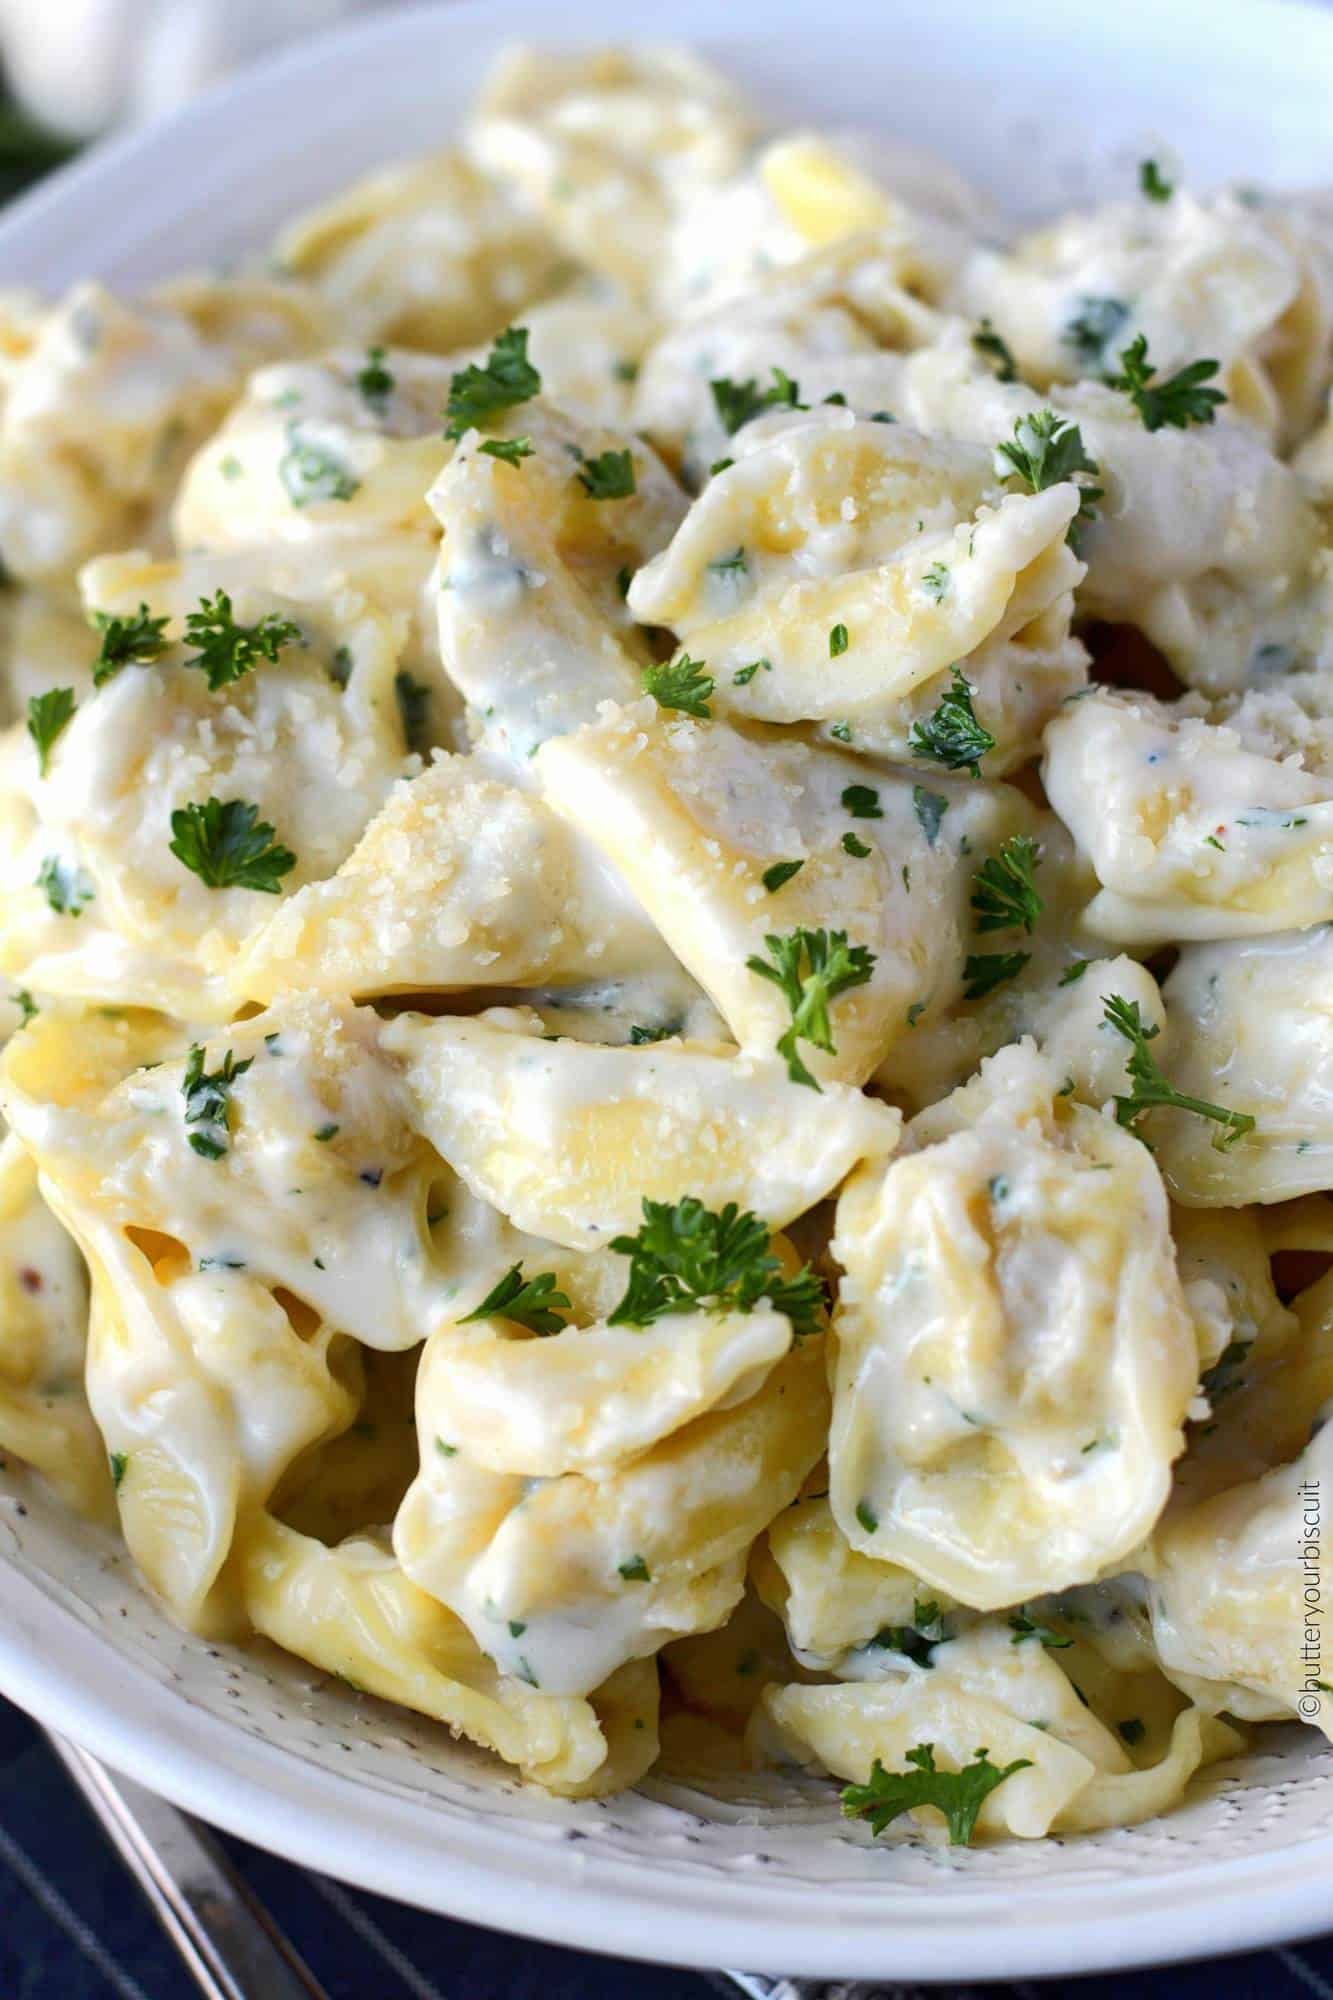 Garlic alfredo cheese tortellini in a white bowl